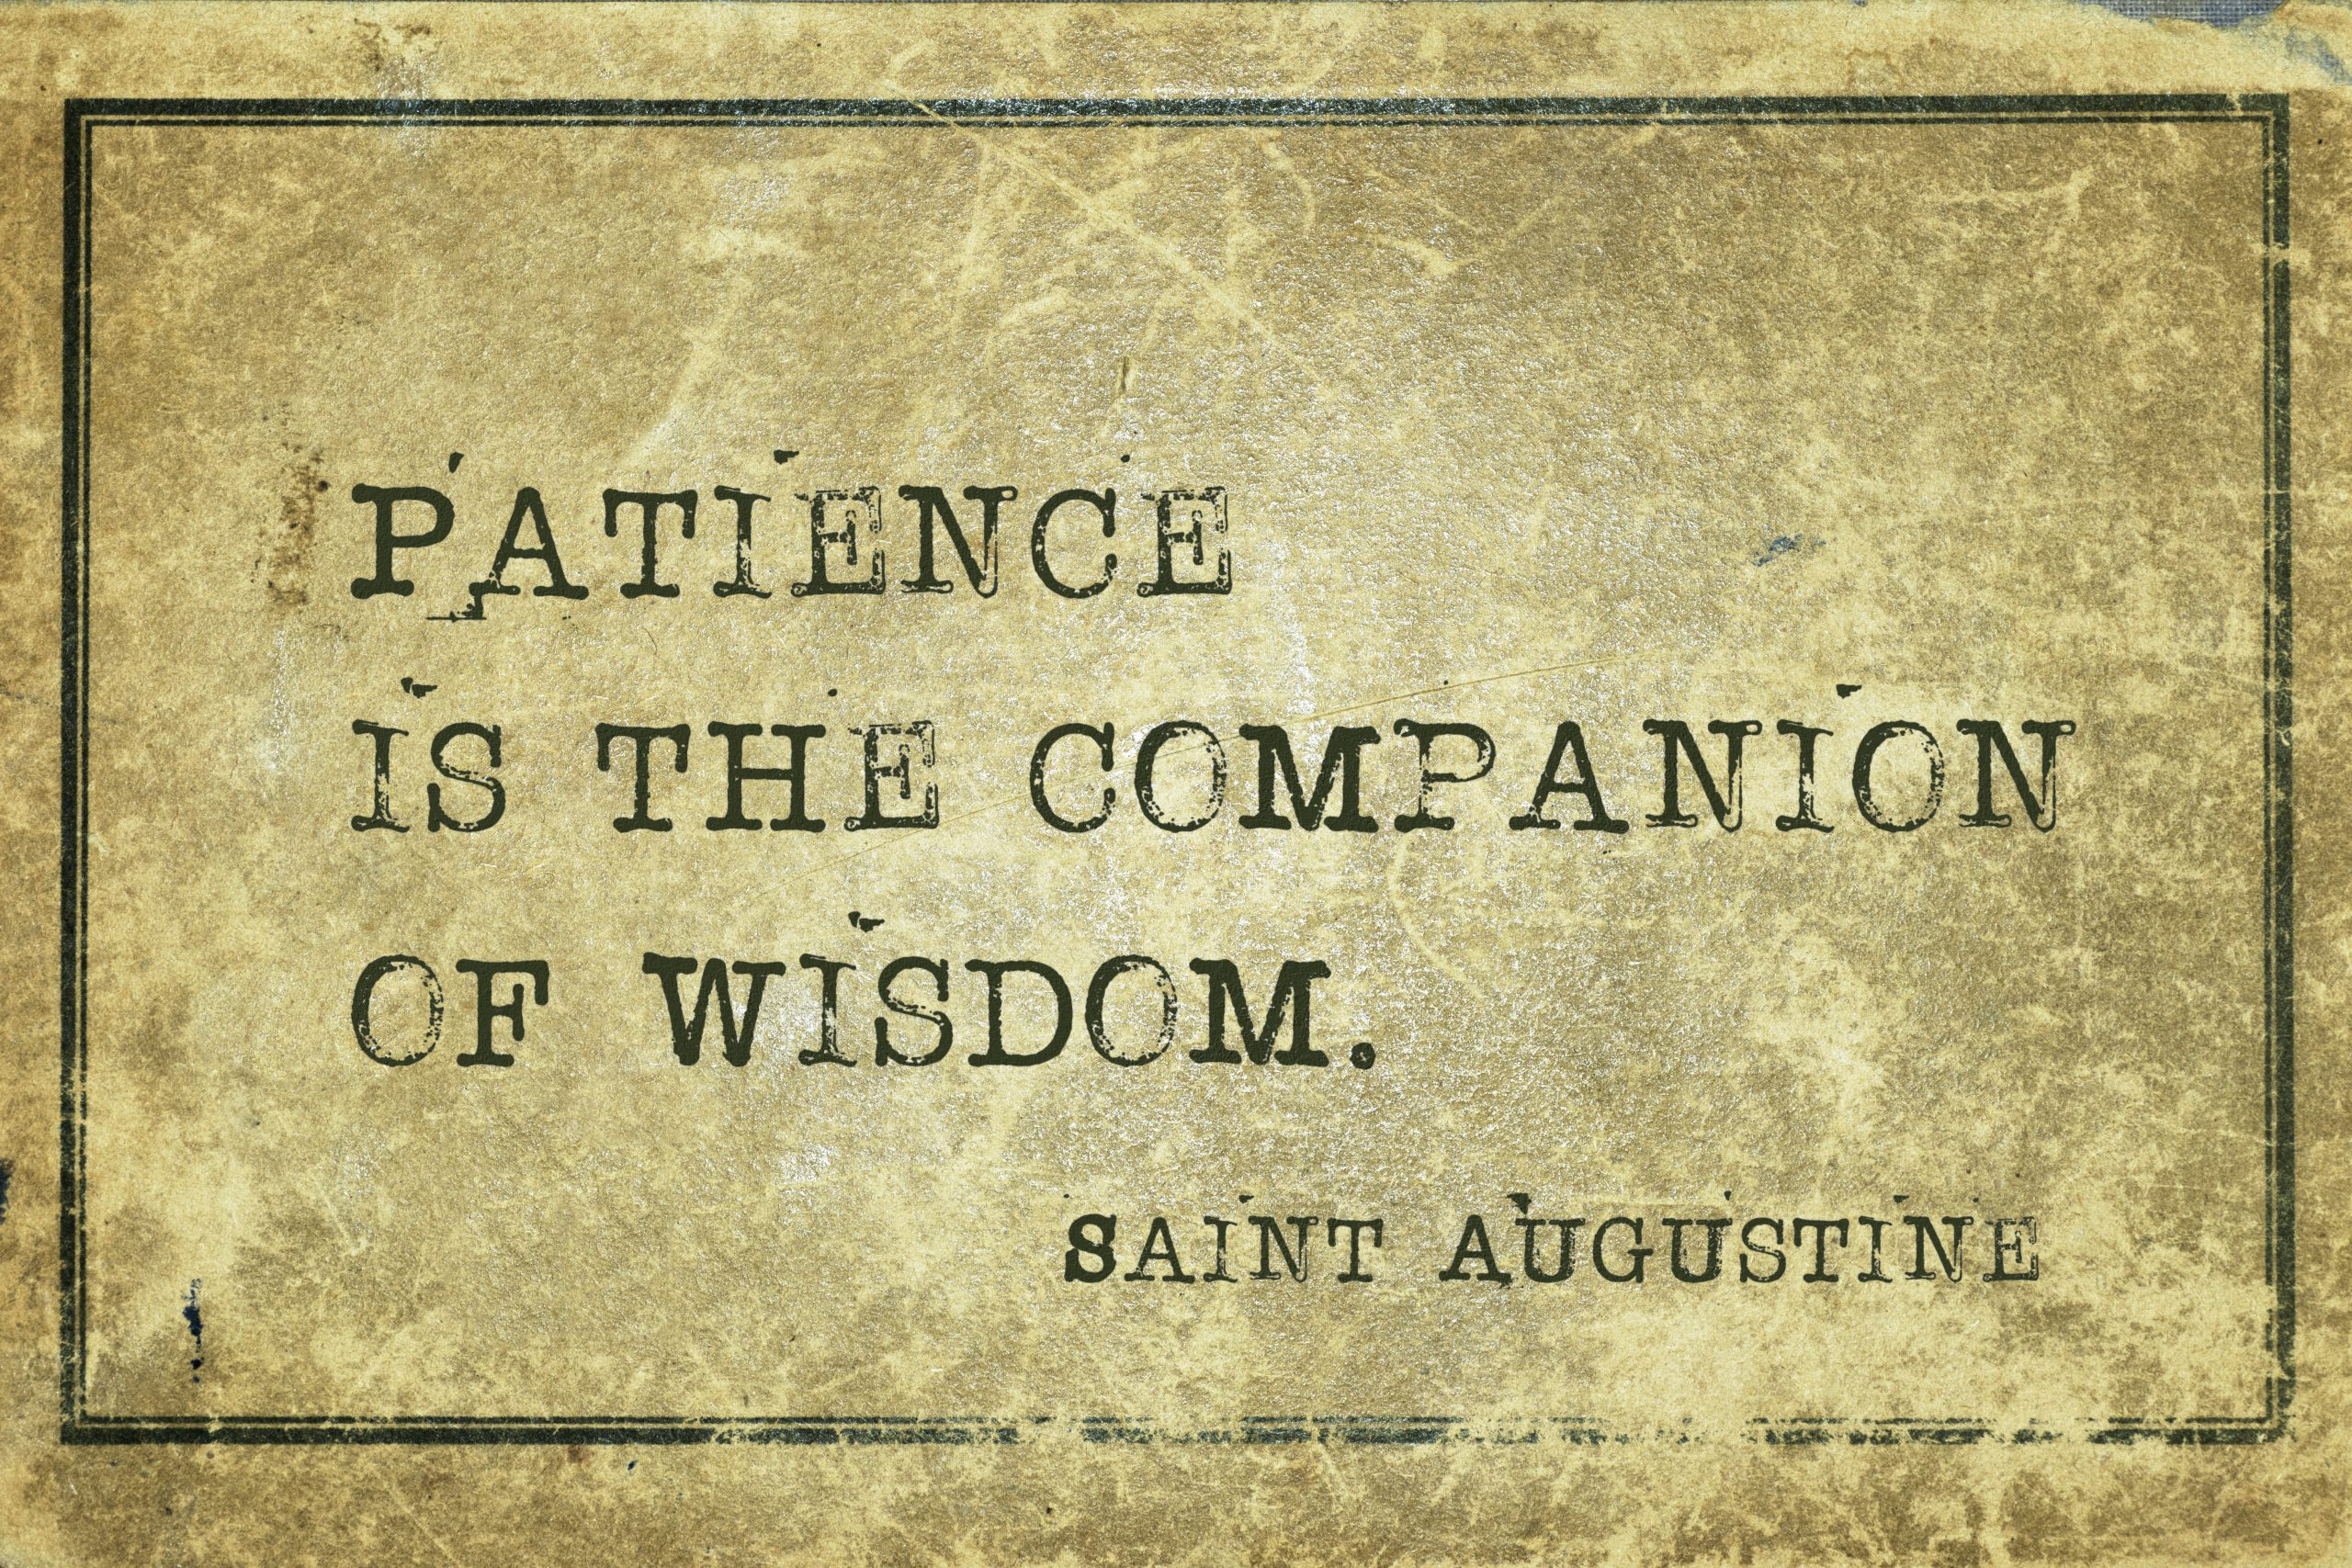 Patience is the companion of wisdom - quote of ancient Christian theologian and philosopher Saint Augustine printed on grunge cardboard